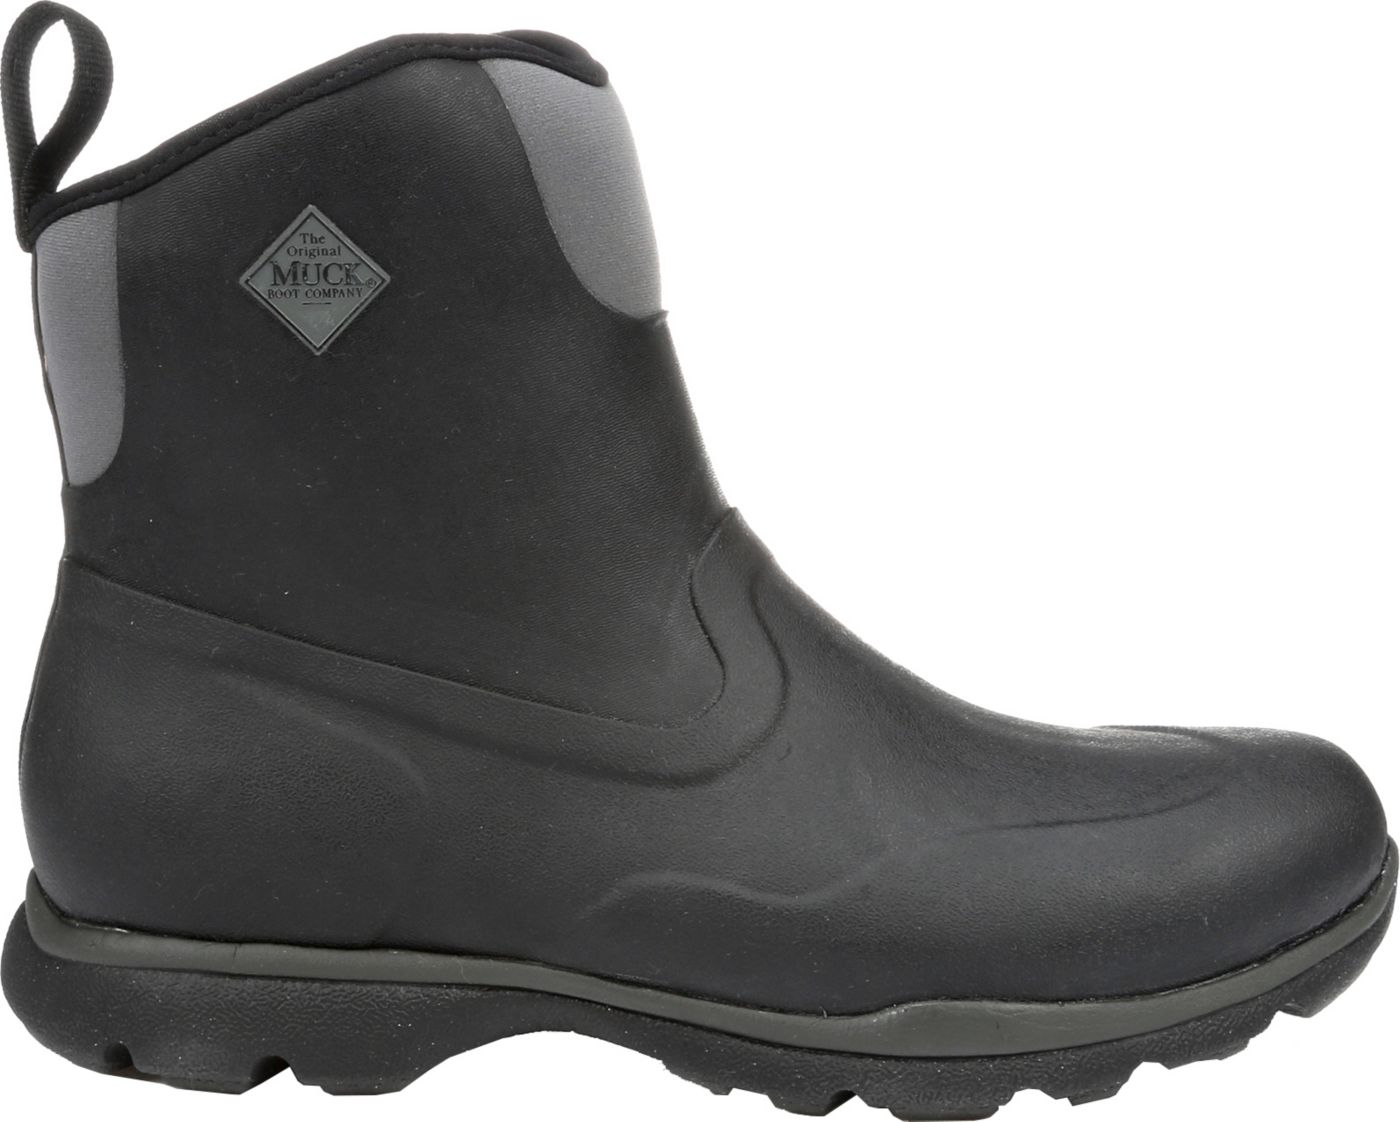 Muck Boots Men's Excursion Pro Mid Waterproof Rubber Hunting Boots